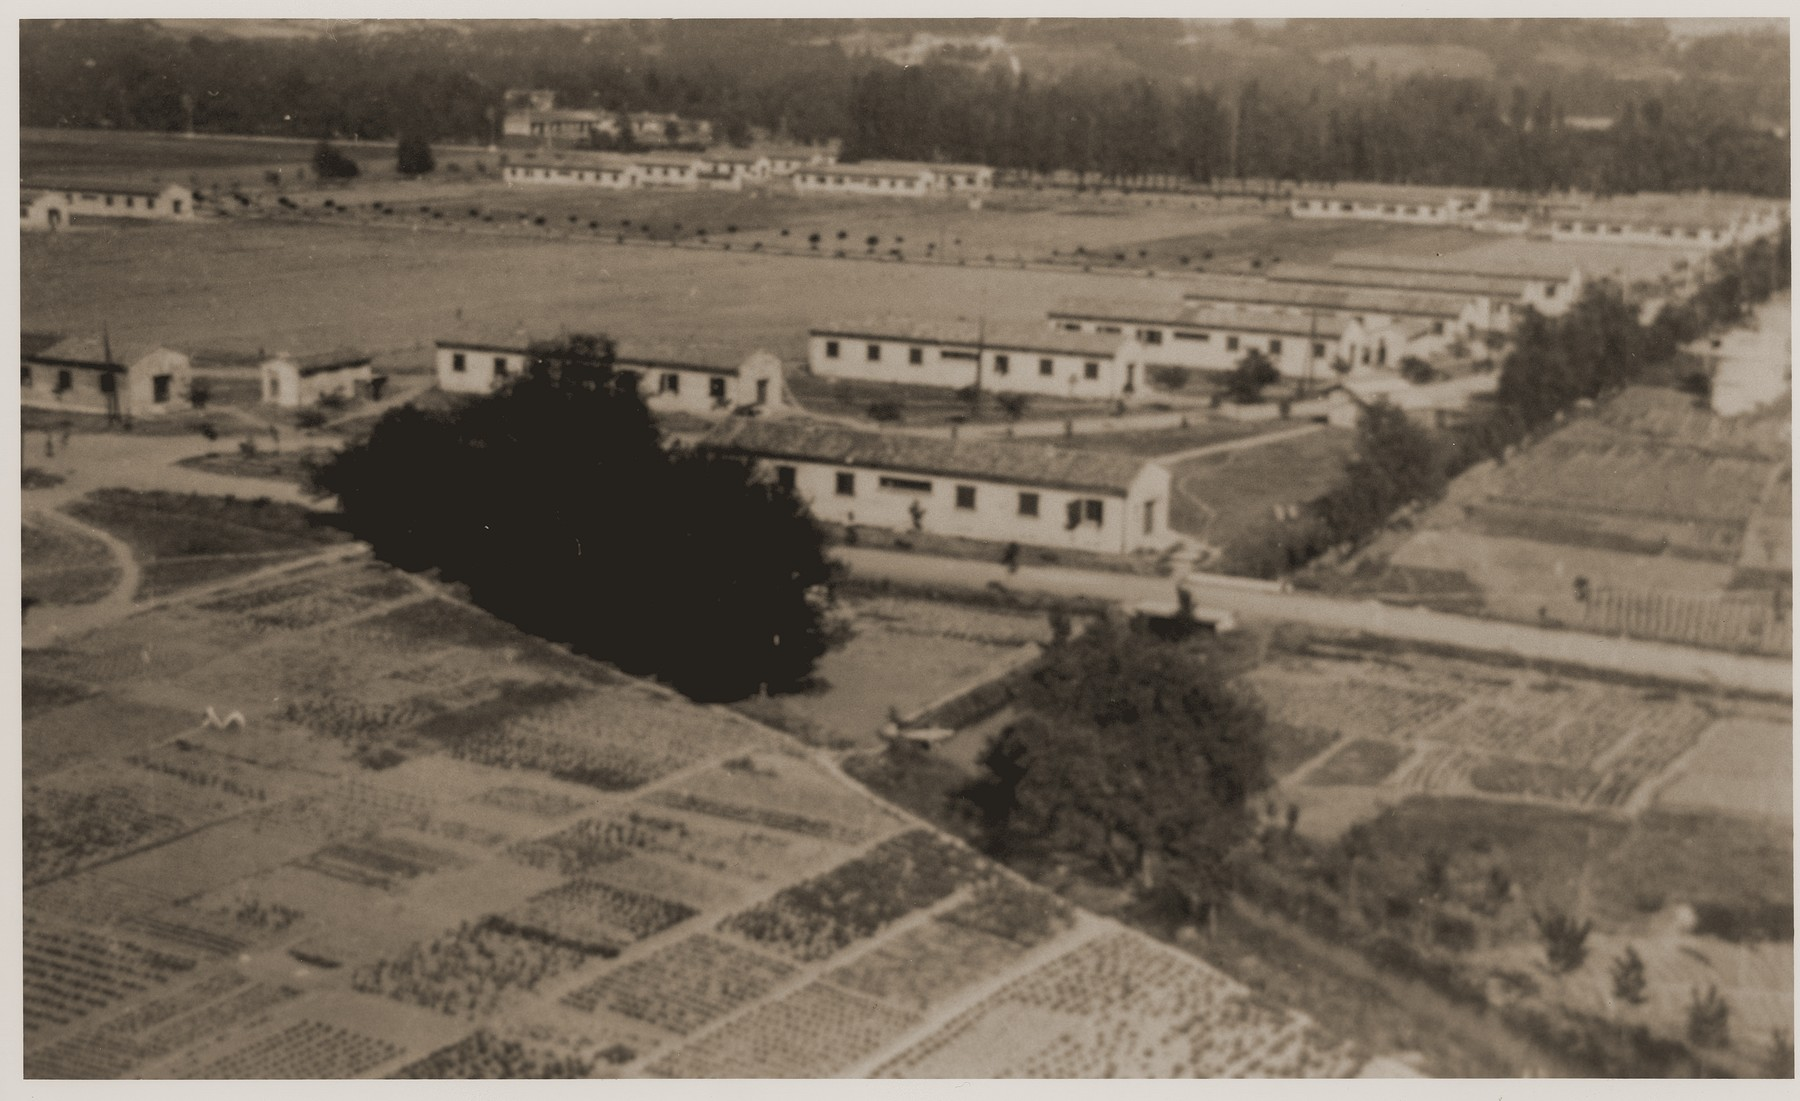 An aerial view of the Recebedou camp.